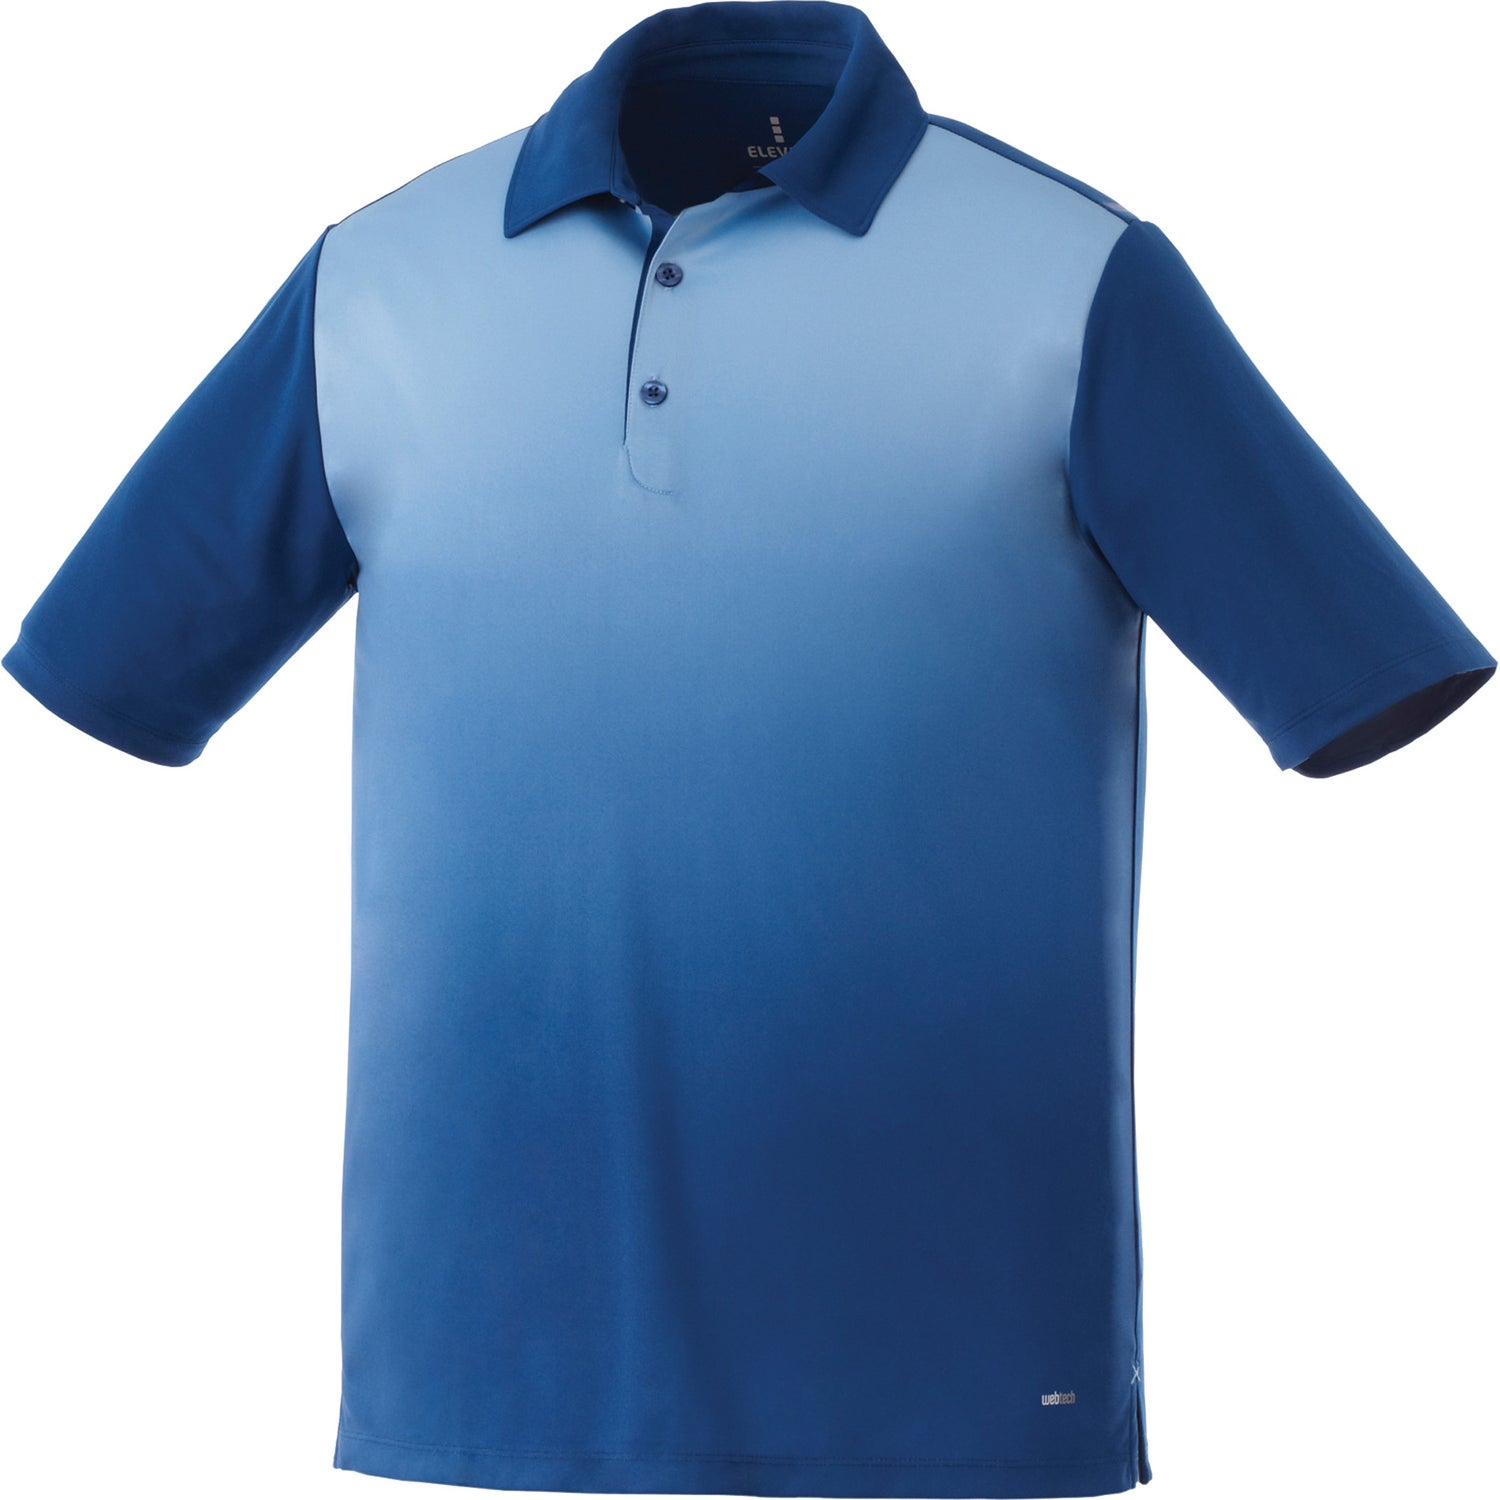 Corporate shirts custom embroidered shirts logo polo shirt for Corporate polo shirts with logo